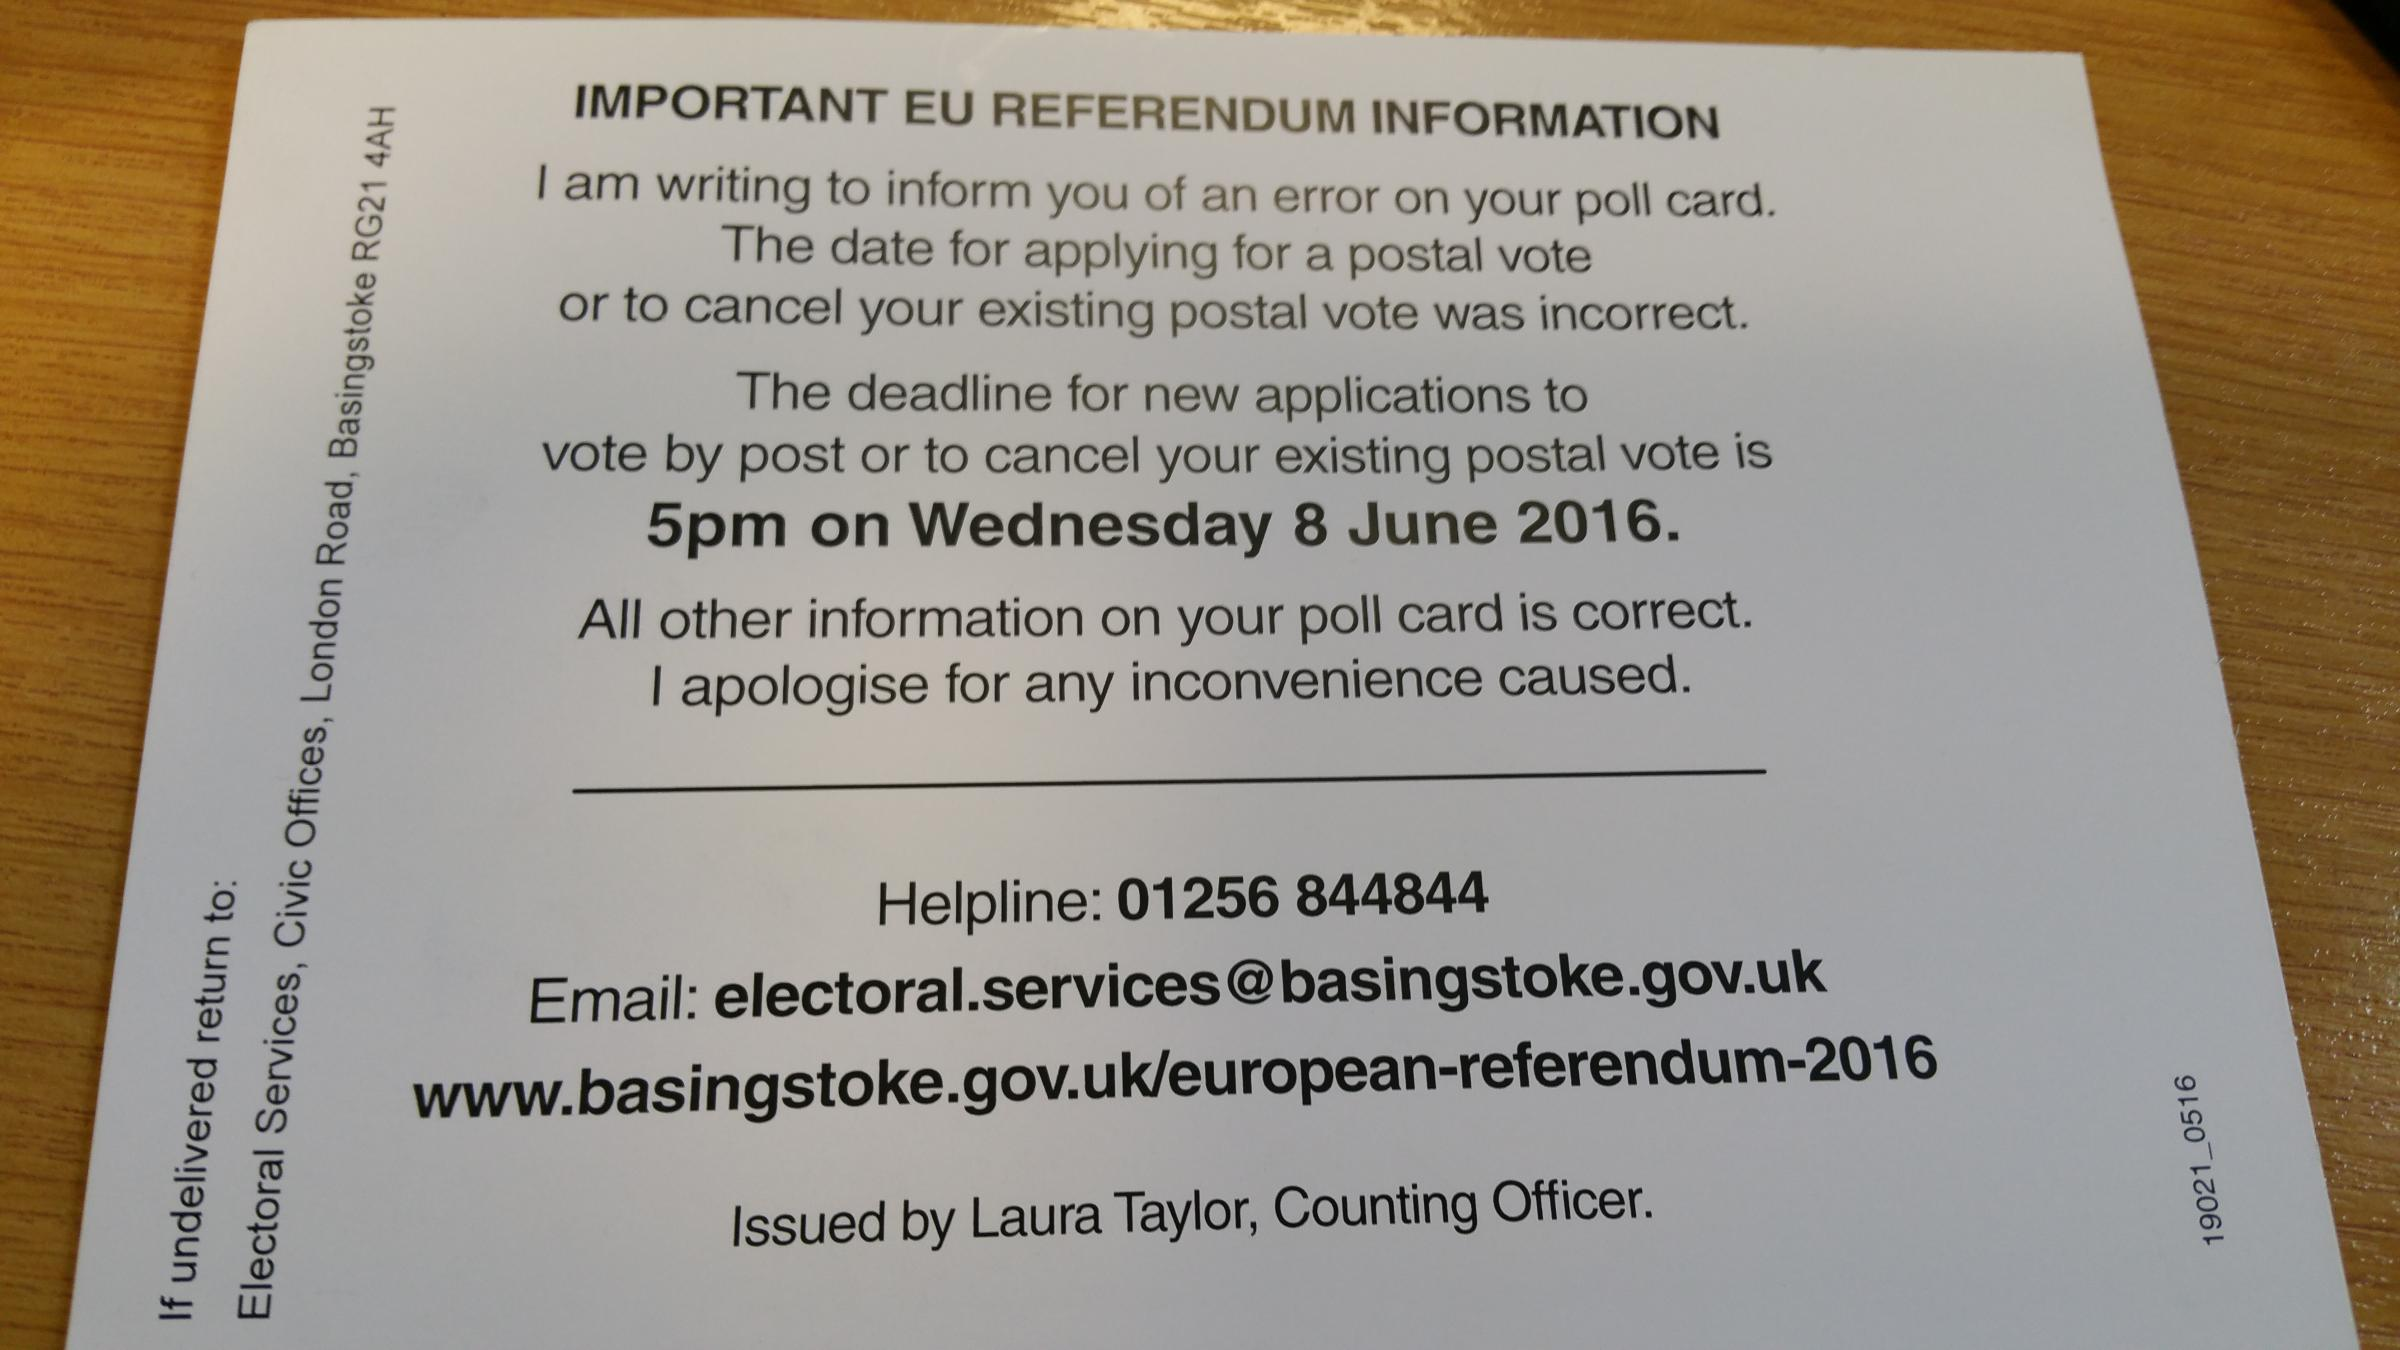 The postcard sent to every resident in the borough